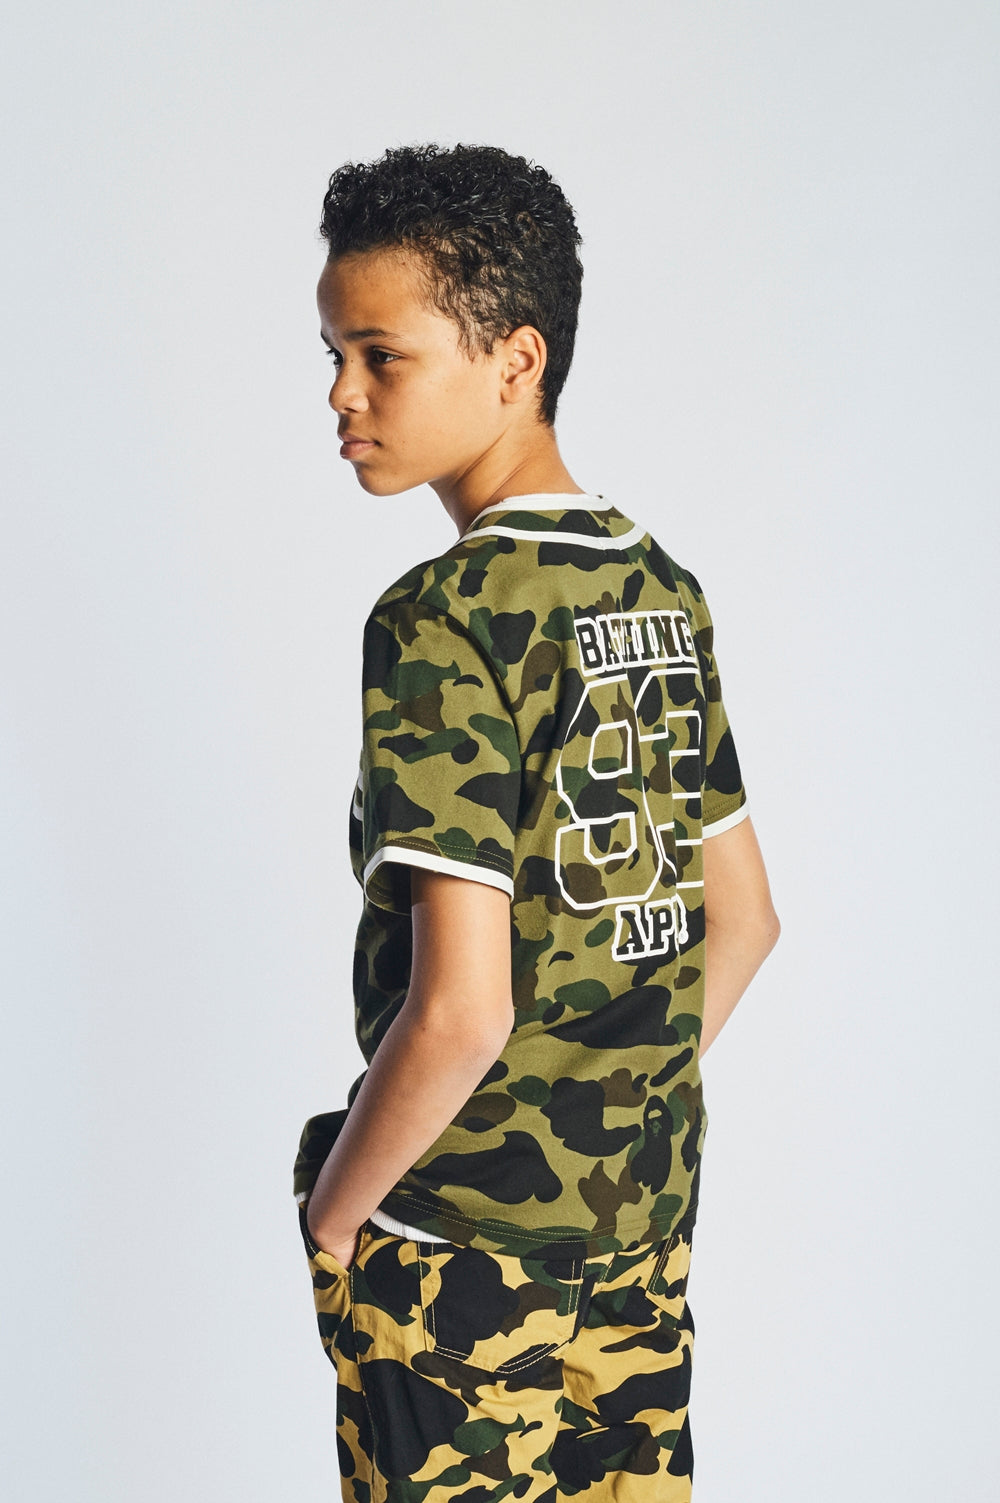 A BATHING APE 2018 SS KIDS' LOOKBOOK 26